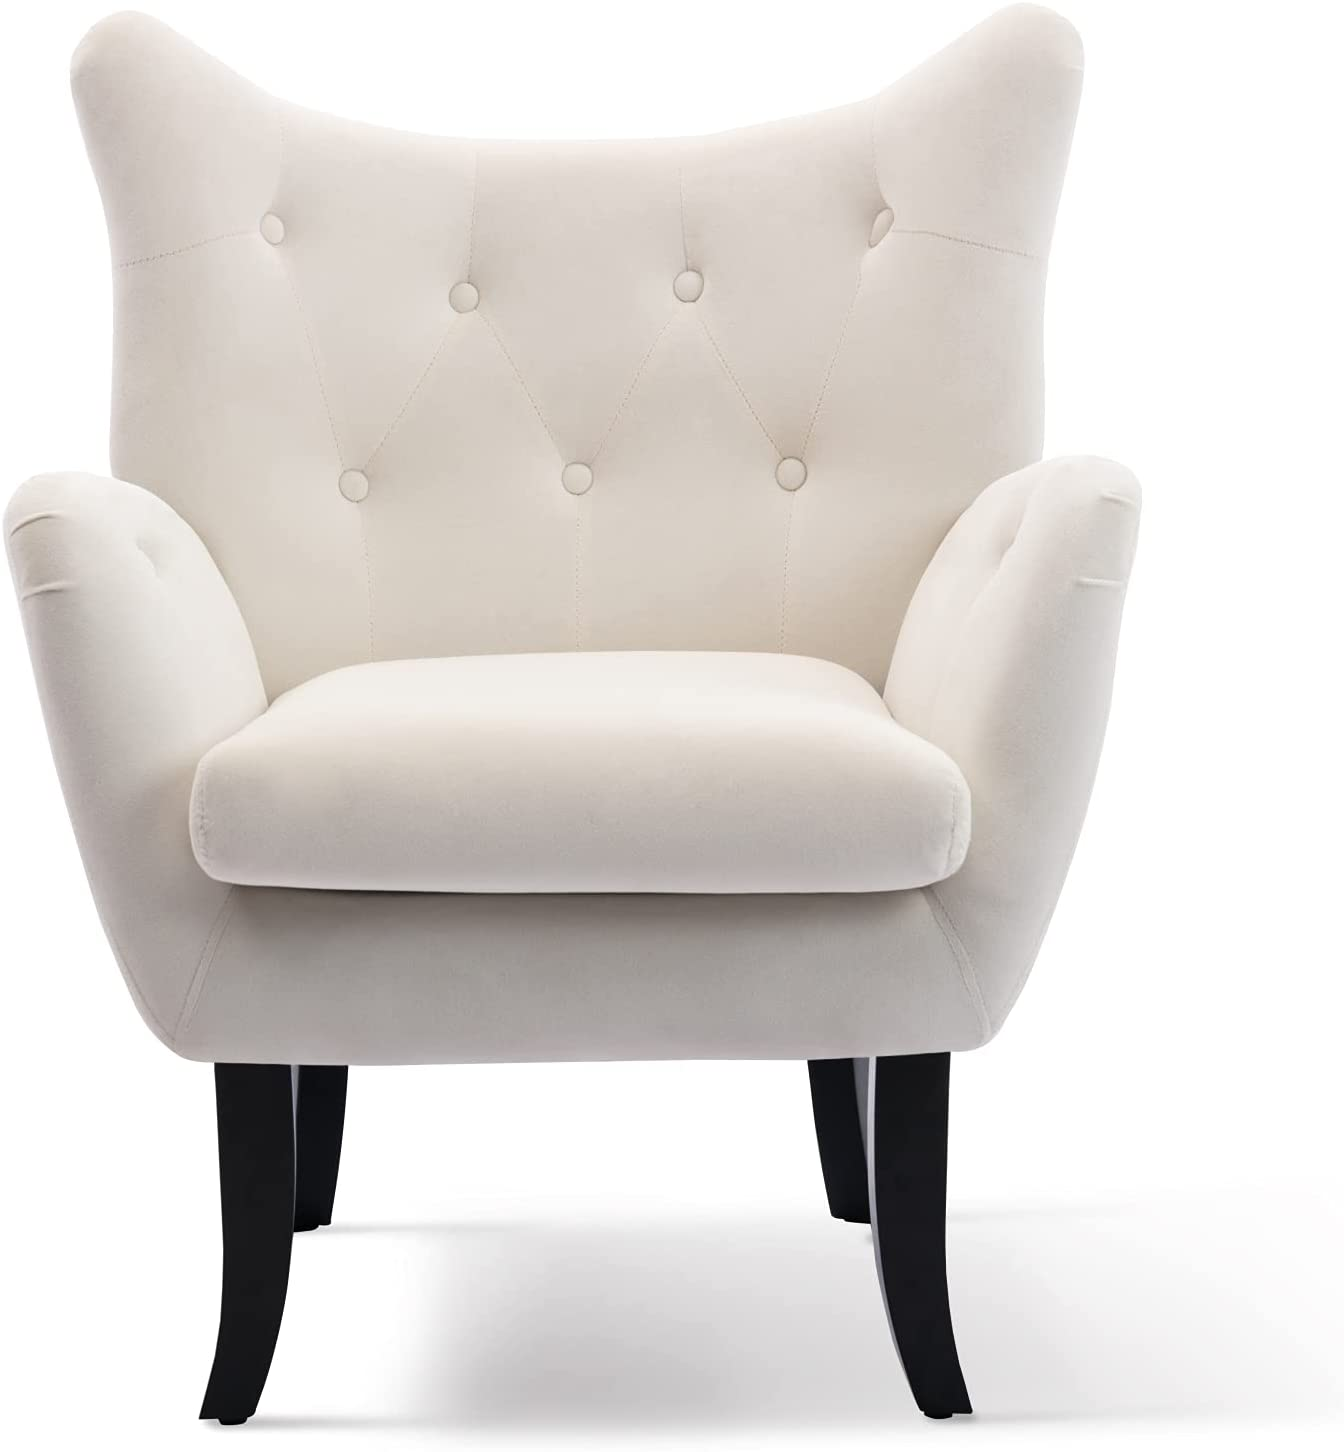 Accent Chair Velvet Popular product Wingback Vanity Tufted Modern 5% OFF Button A